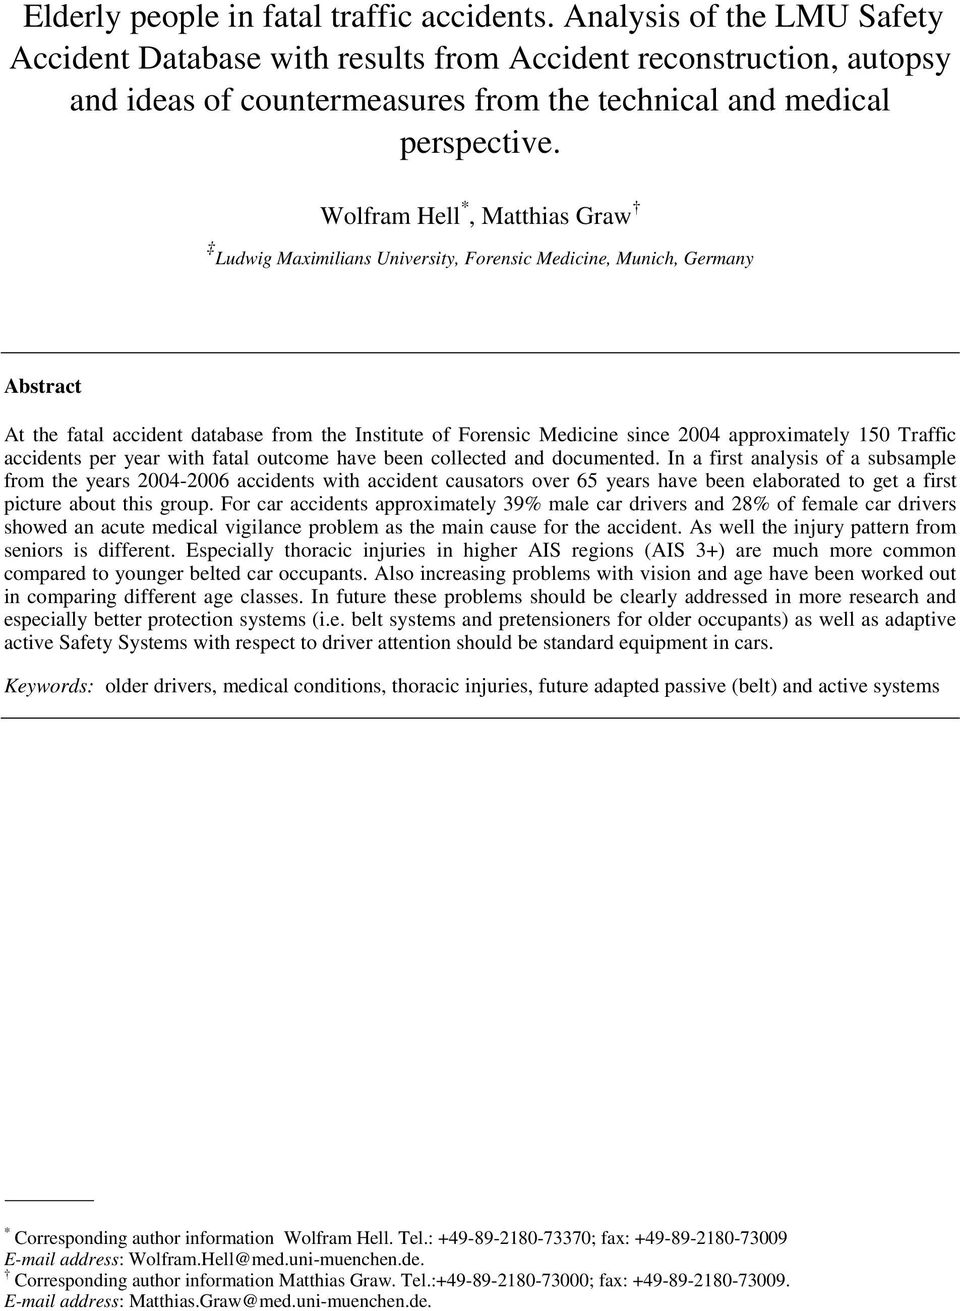 Wolfram Hell *, Matthias Graw Ludwig Maximilians University, Forensic Medicine, Munich, Germany Abstract At the fatal accident database from the Institute of Forensic Medicine since 2004